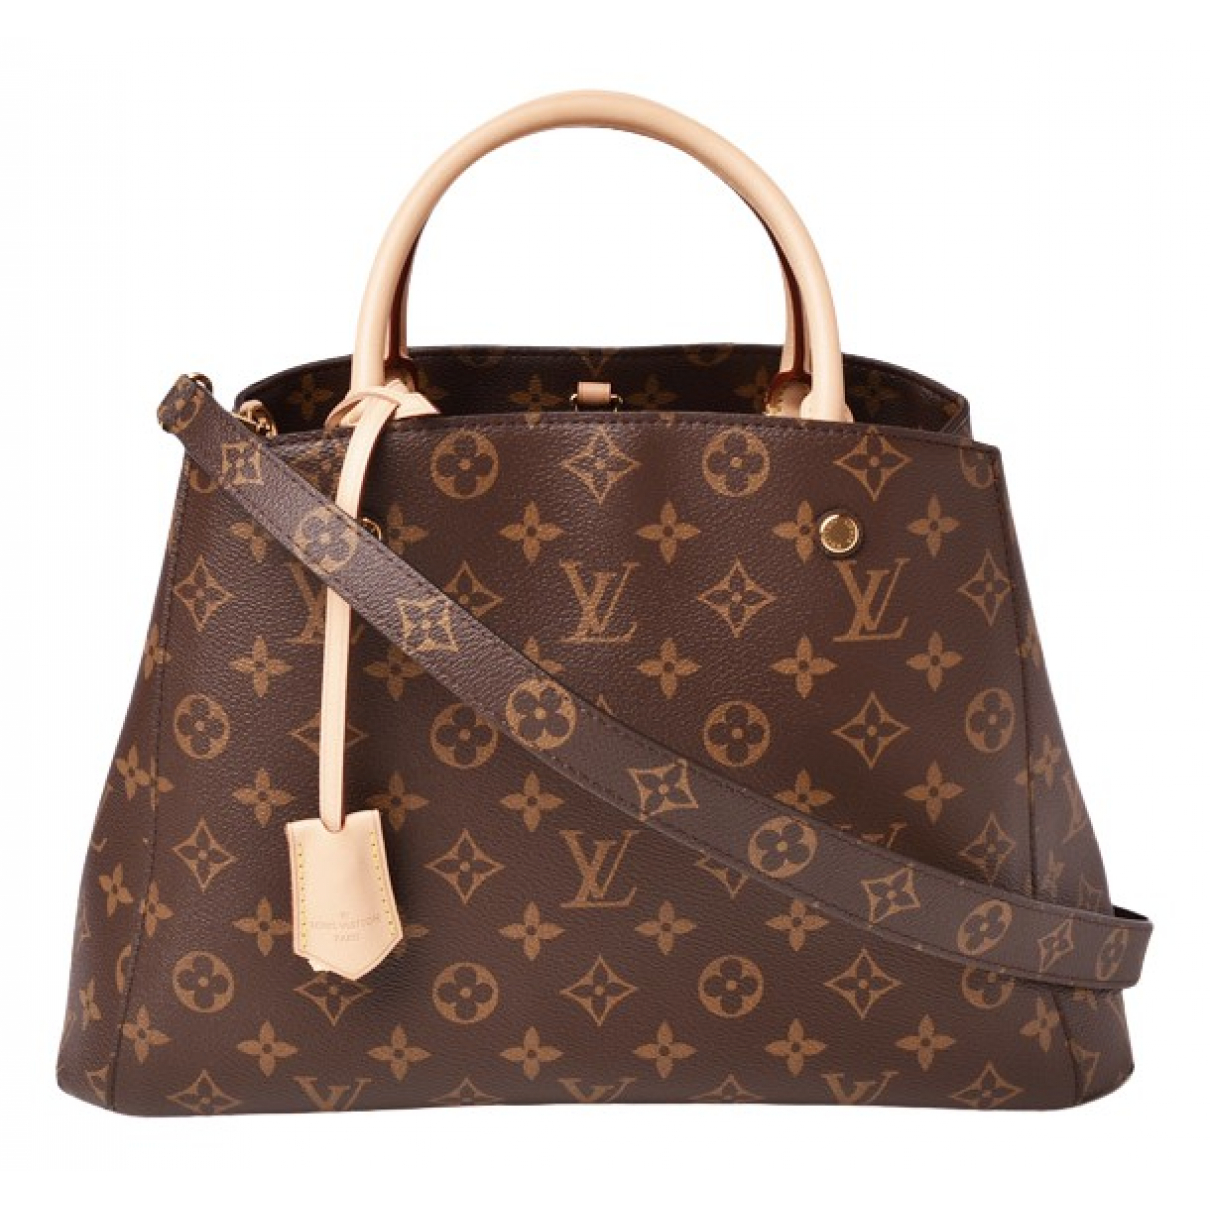 Louis Vuitton Montaigne Brown Cloth handbag for Women \N